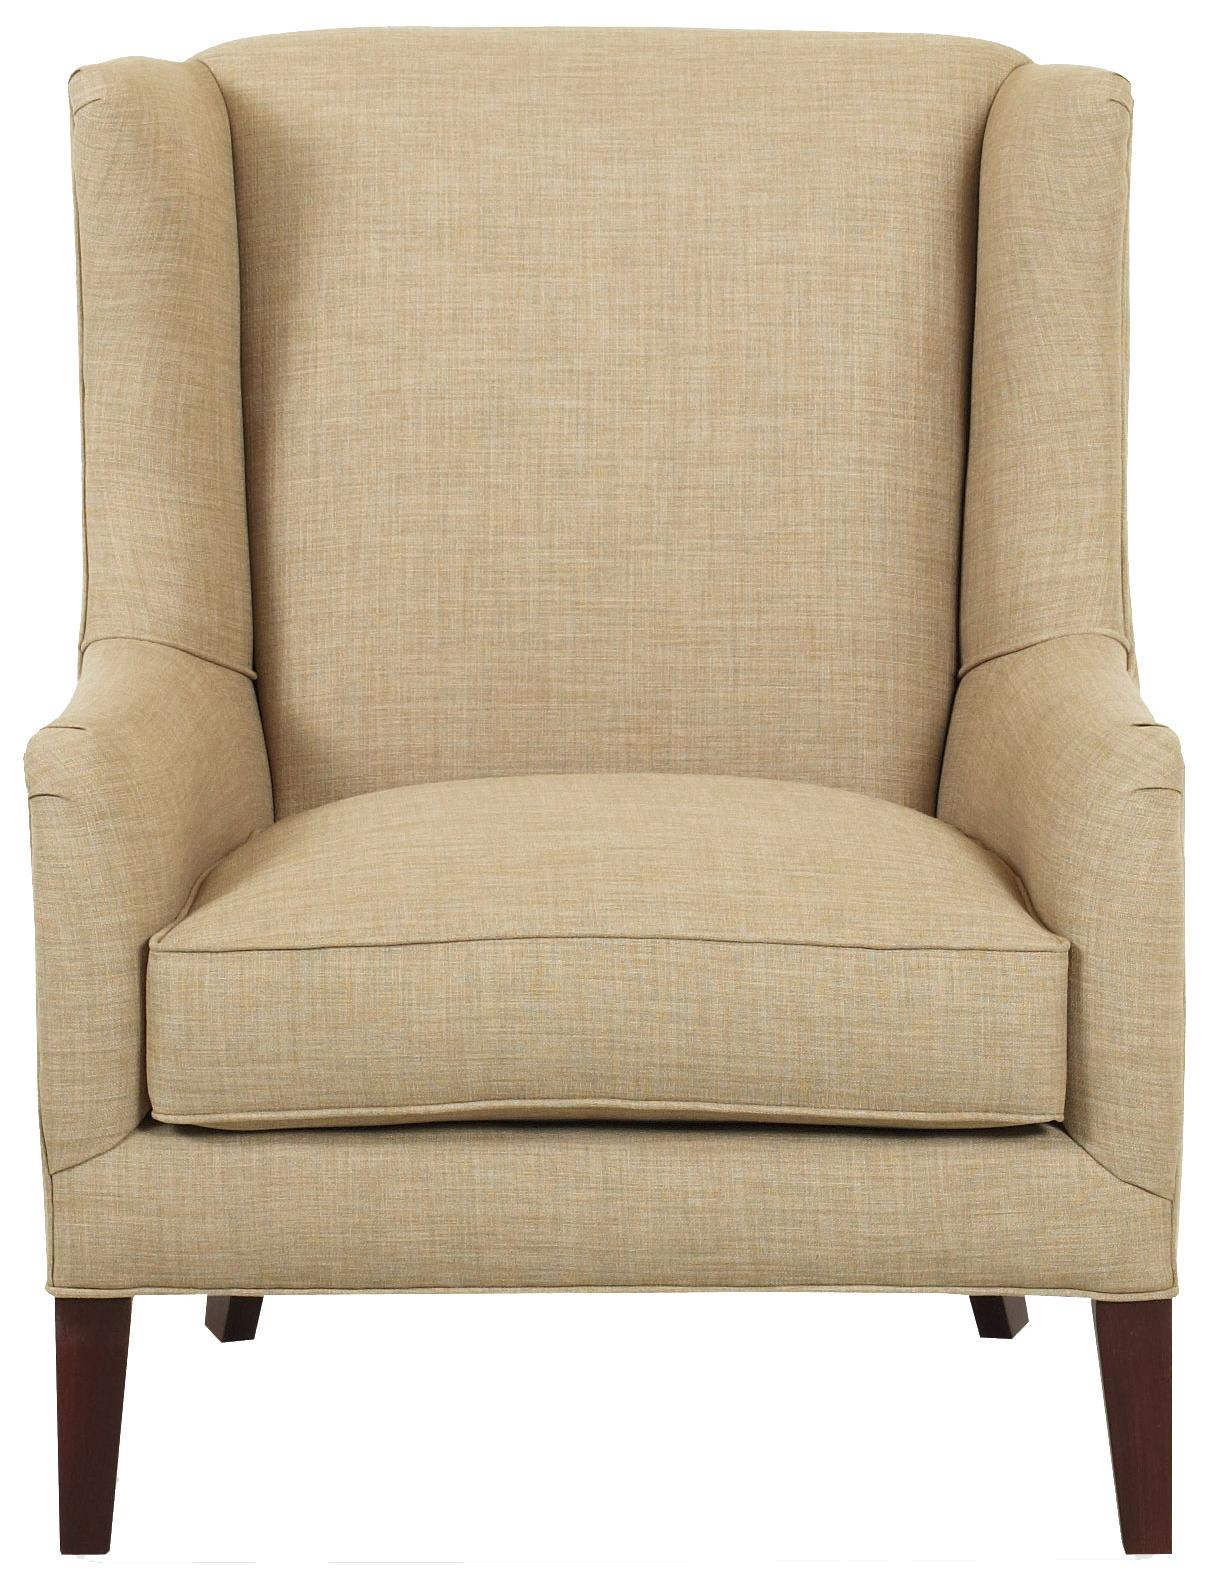 Klaussner Chairs and Accents Upholstered Quinn Chair with Wings - Item Number: K730C